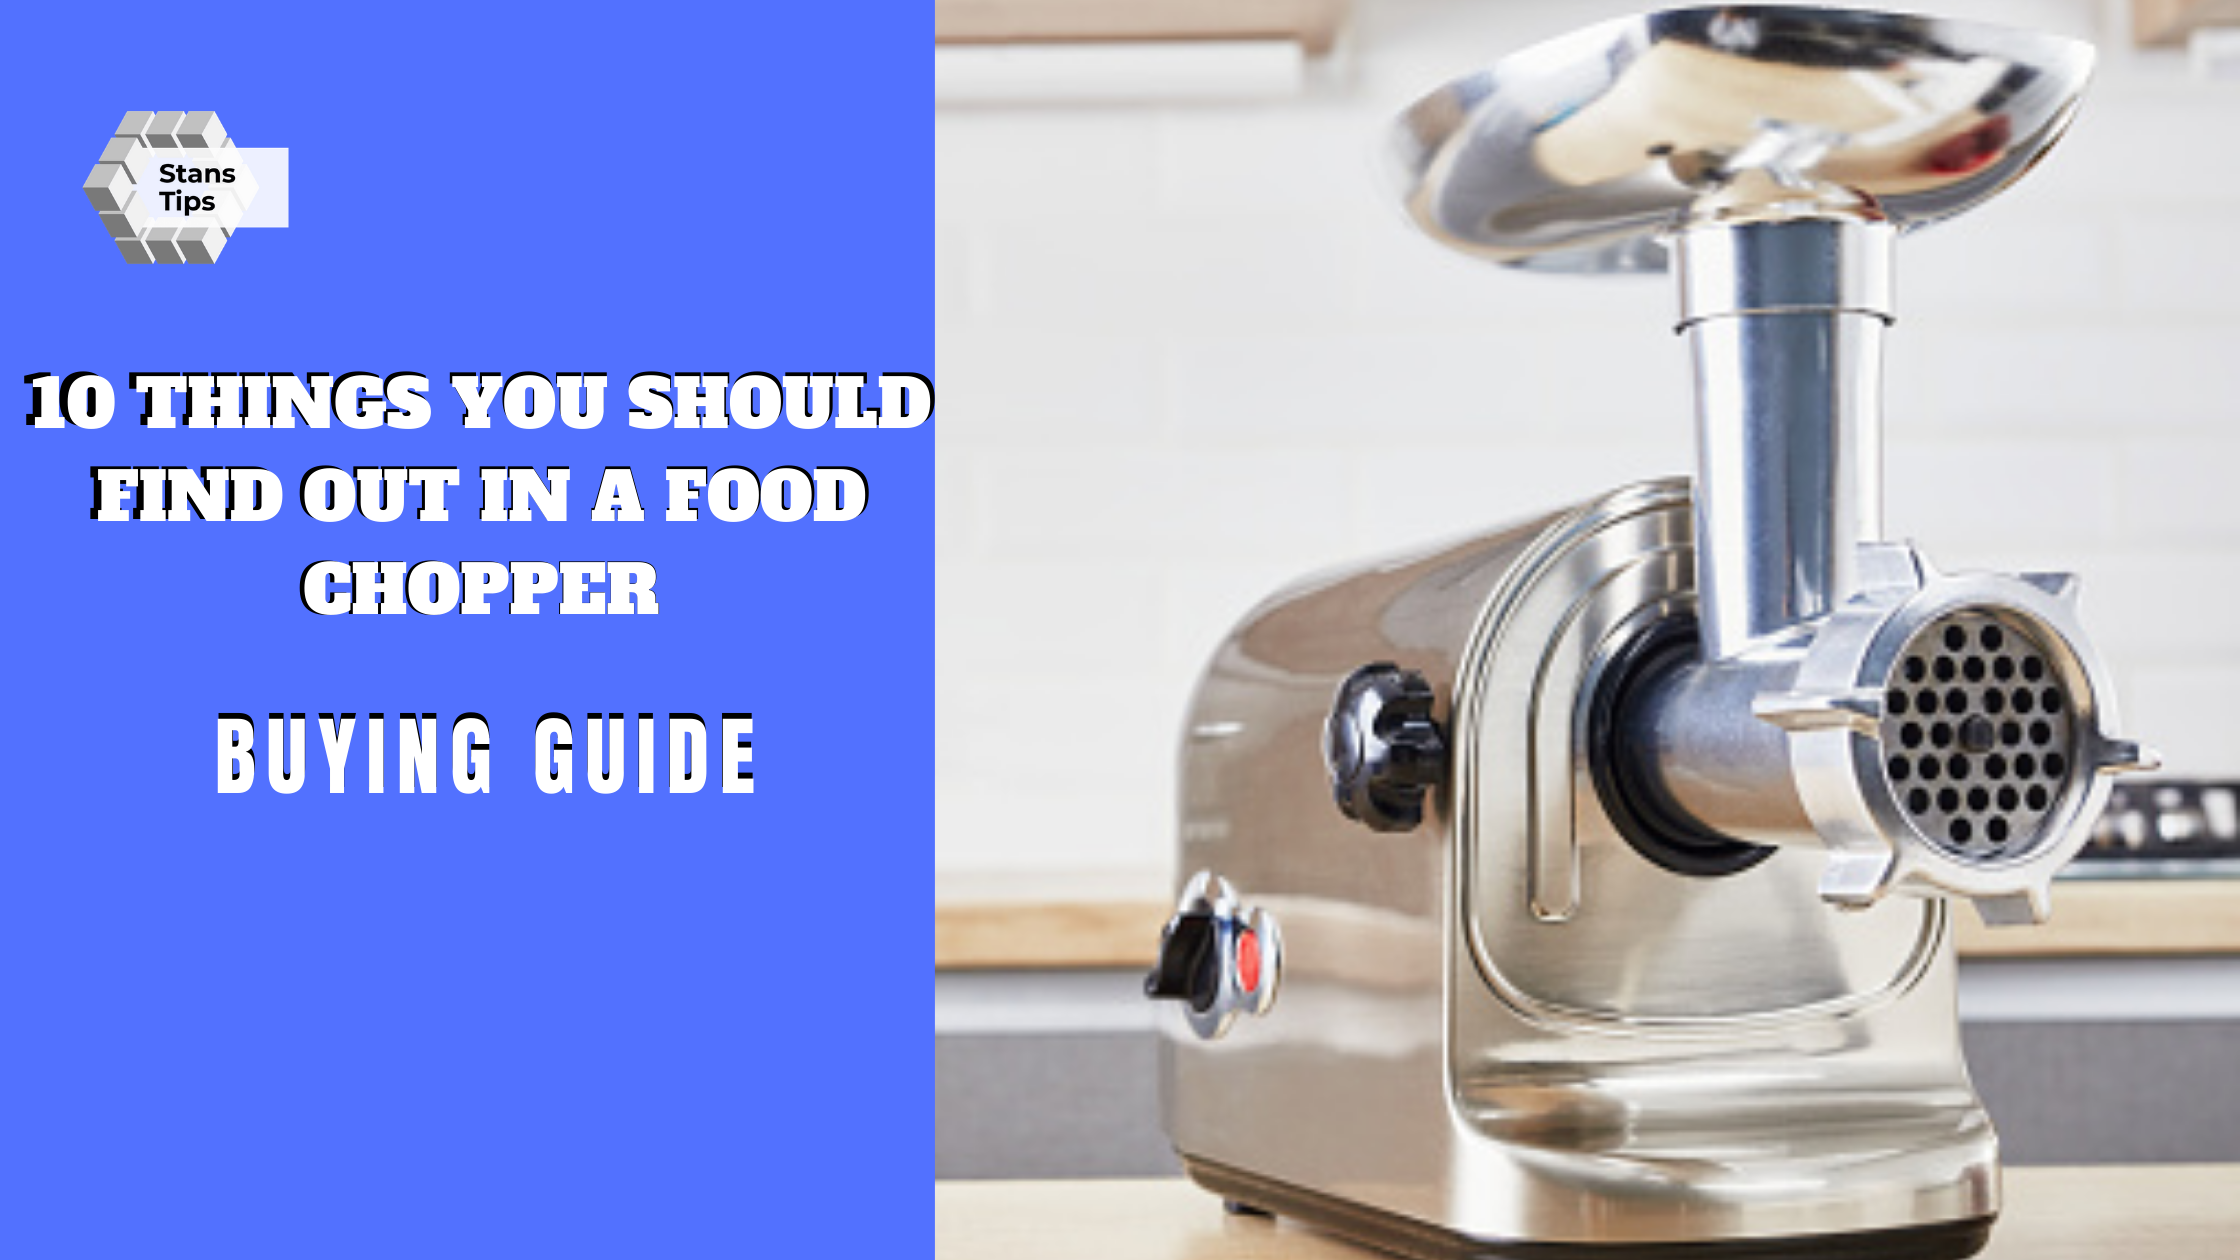 10 Things you should find out in a food chopper